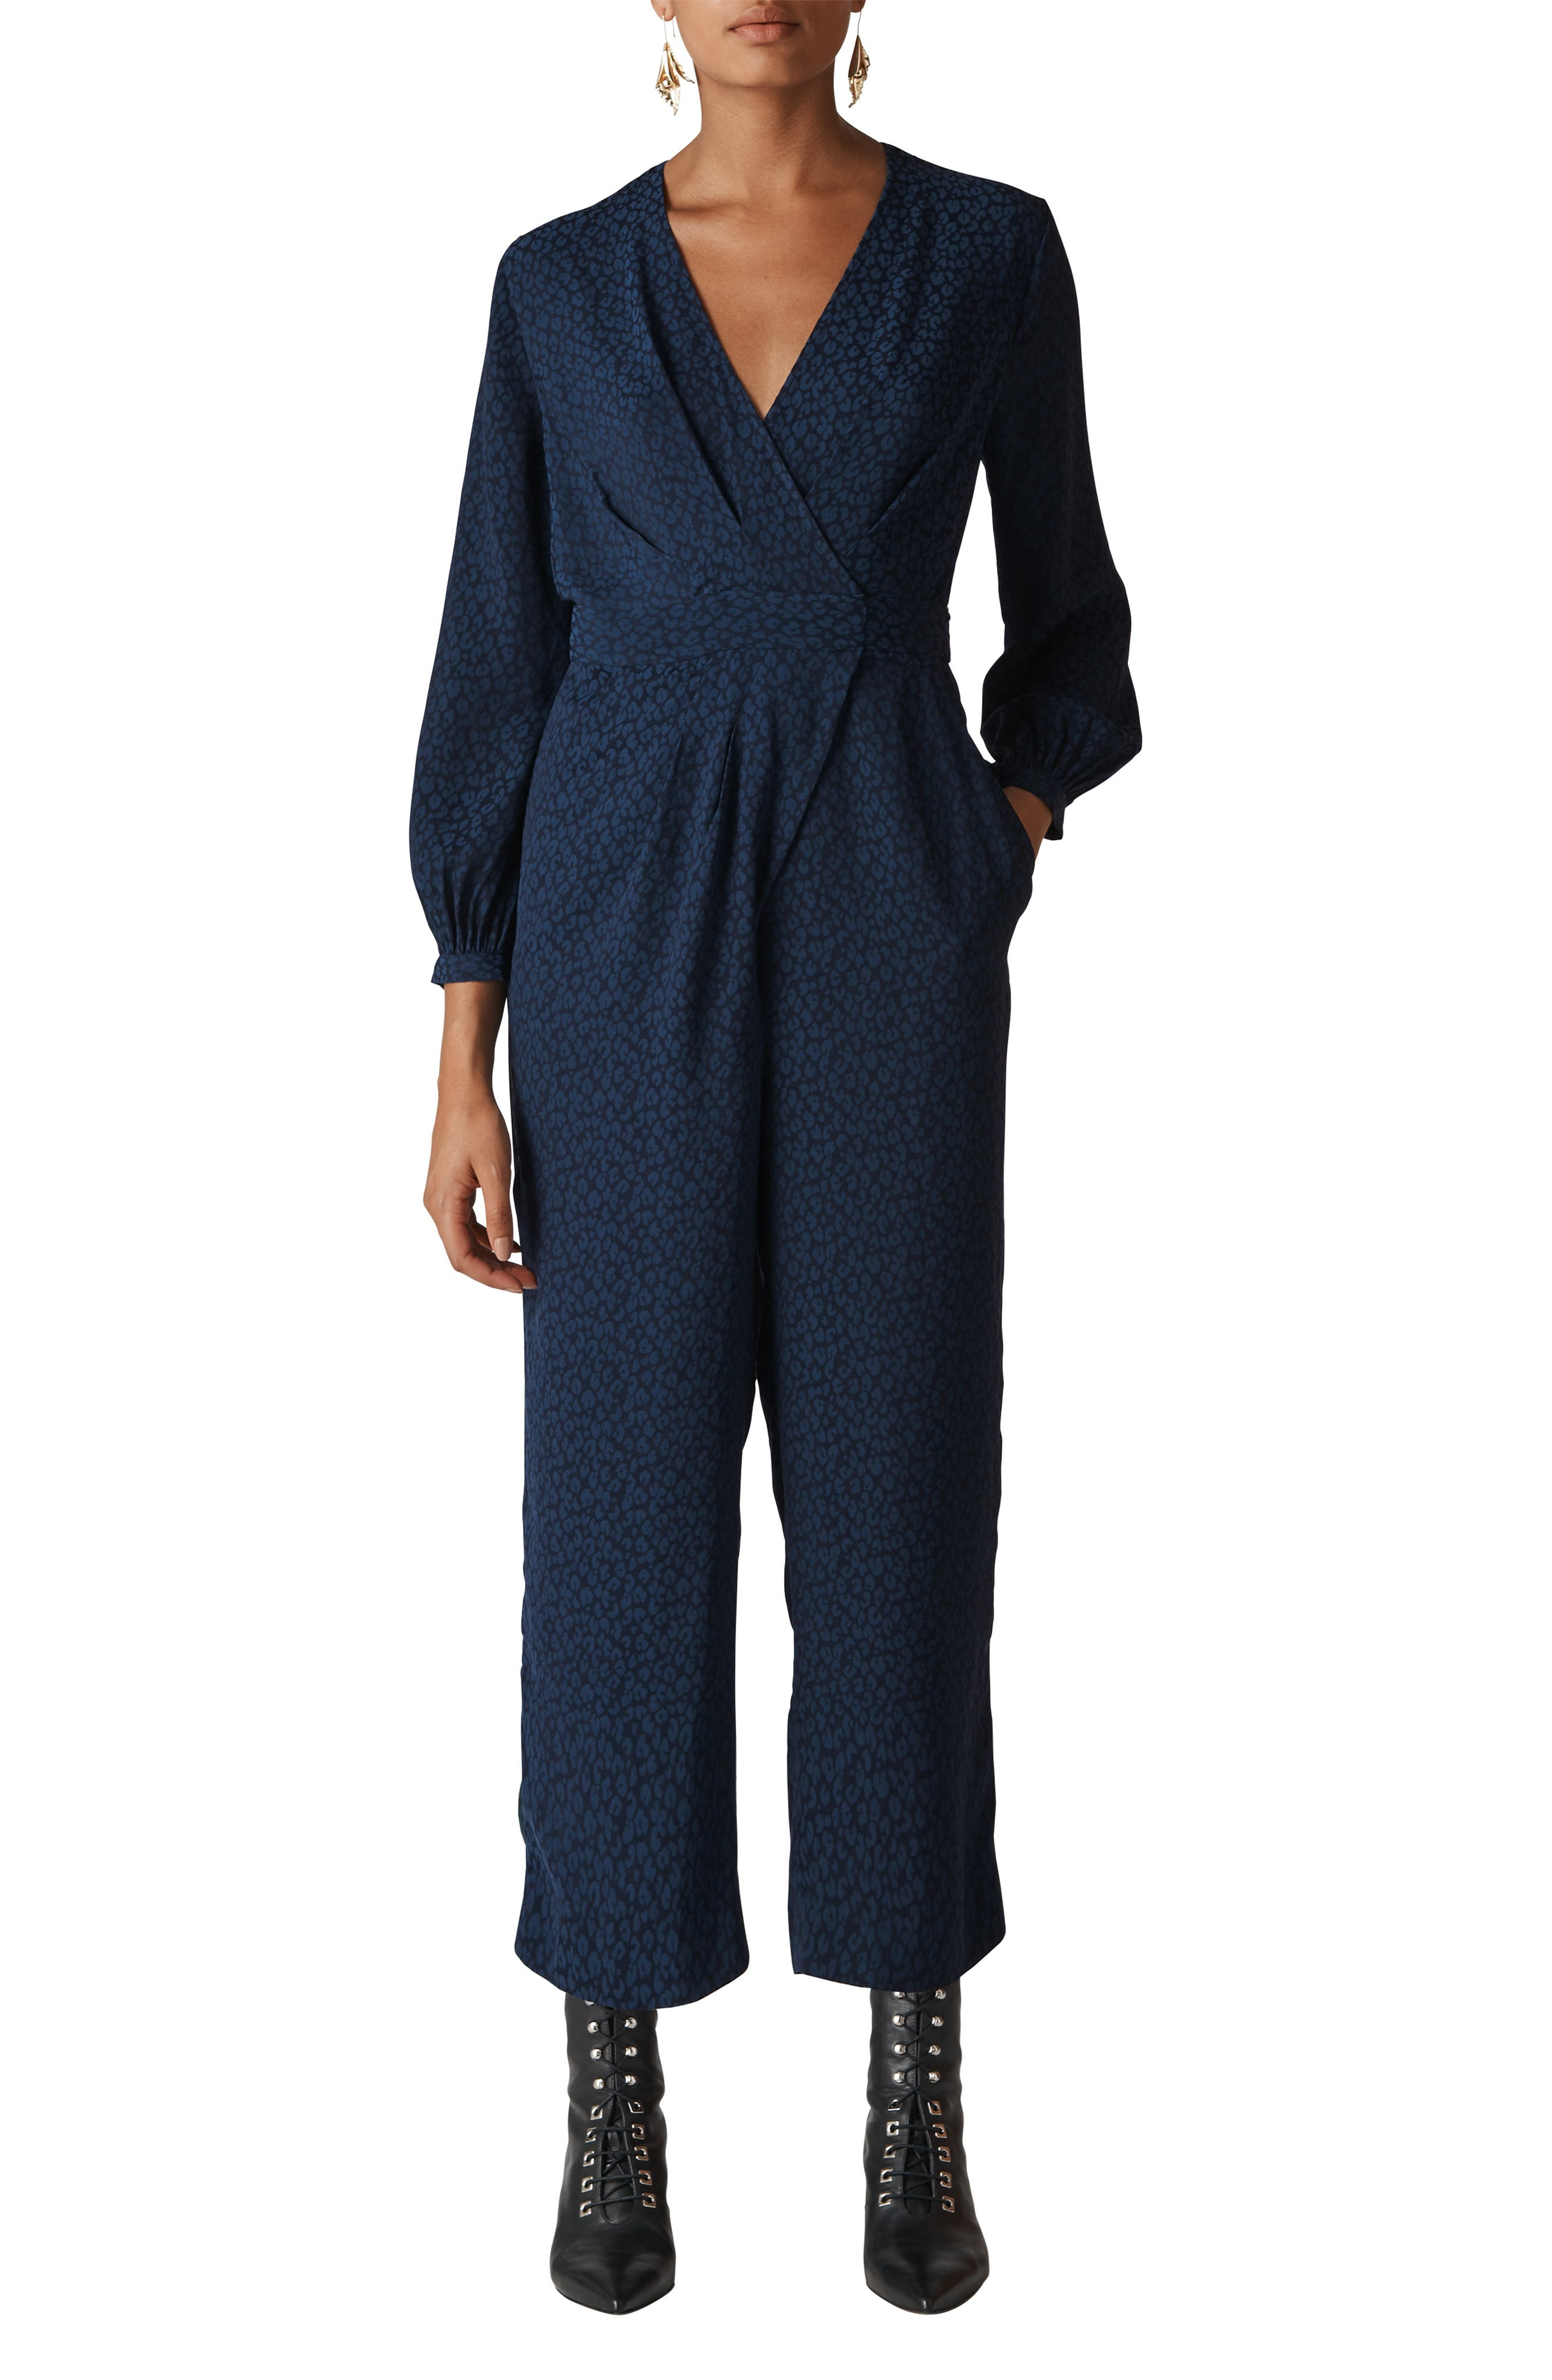 WHISTLES,                             Animal Jacquard Tie Jumpsuit,                             Main thumbnail 1, color,                             400